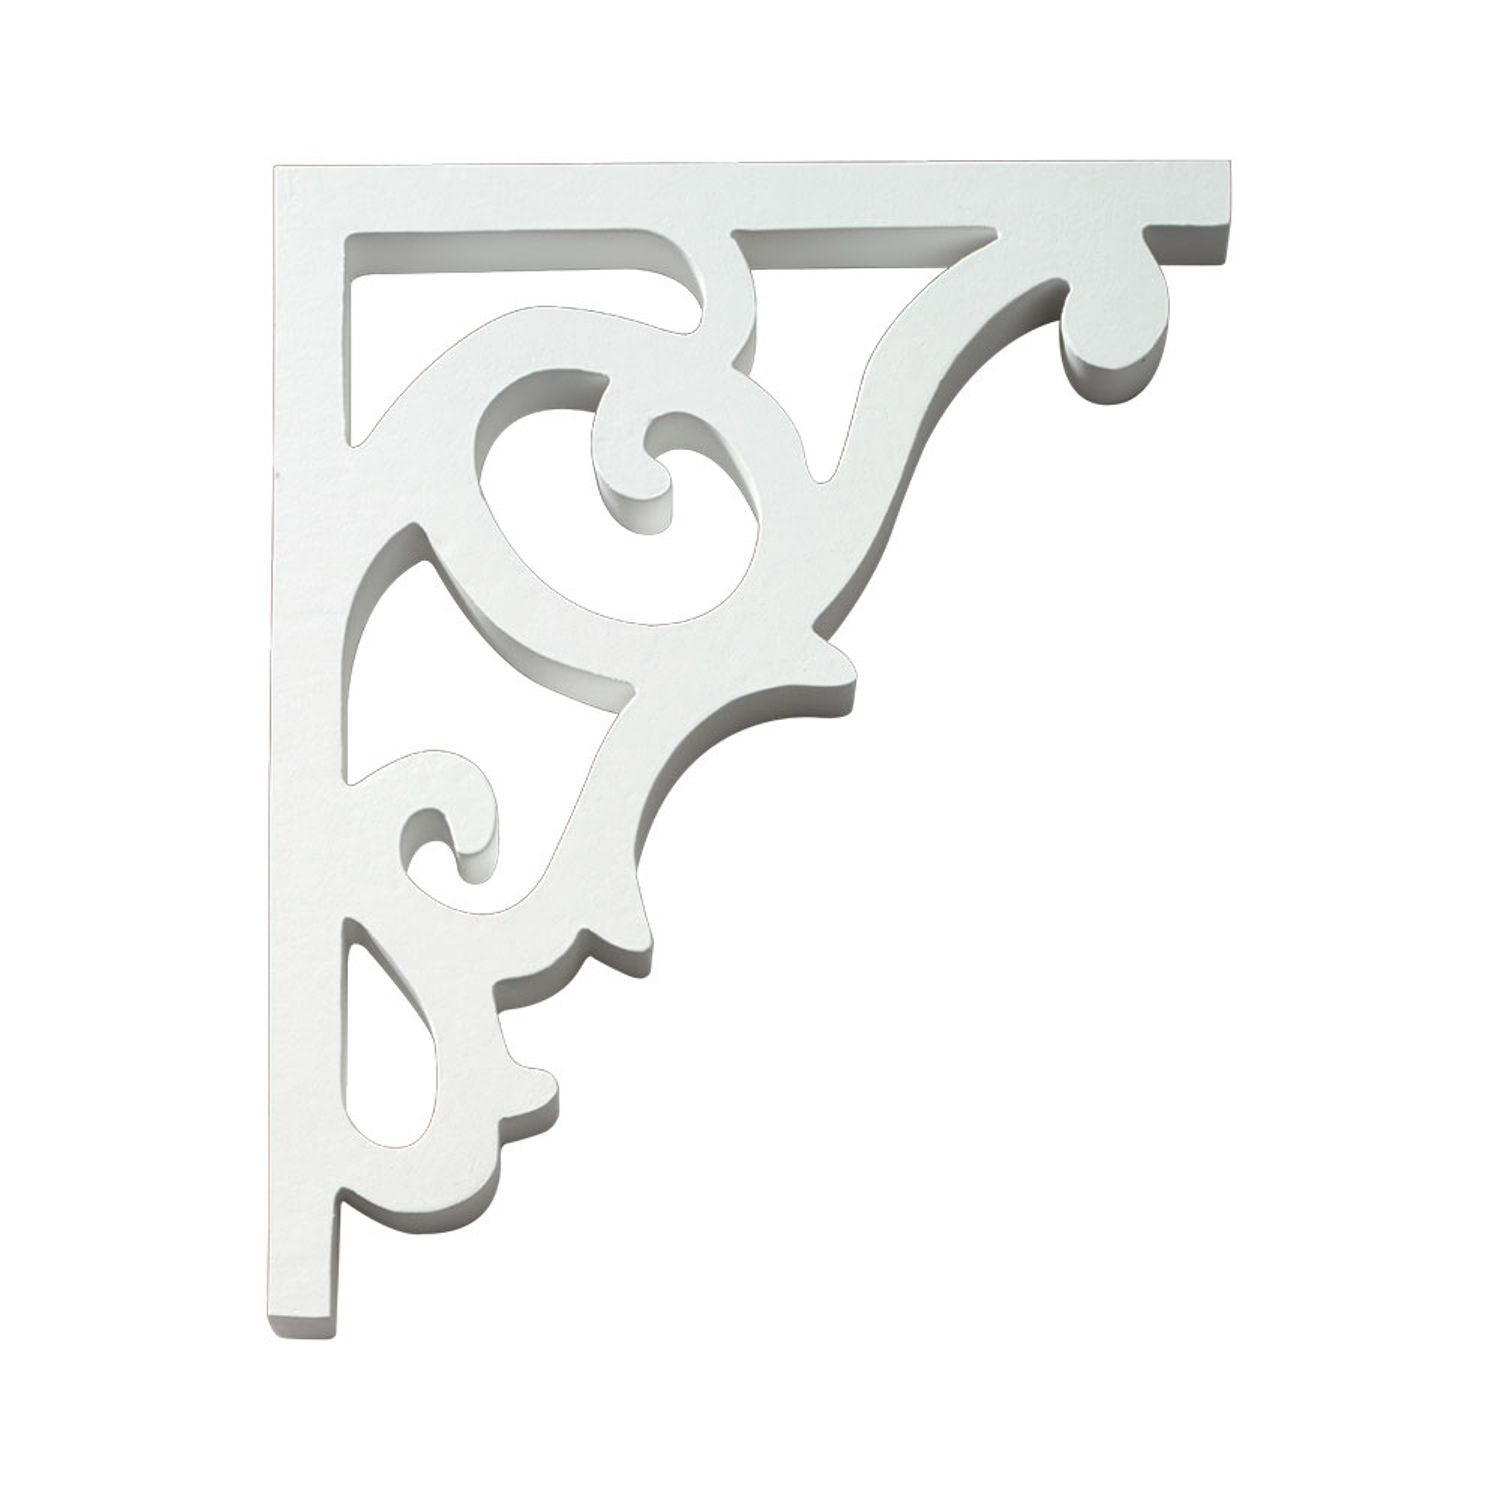 "1"" Wide x 12-1/2"" High Primed White Polyurethane Bracket"